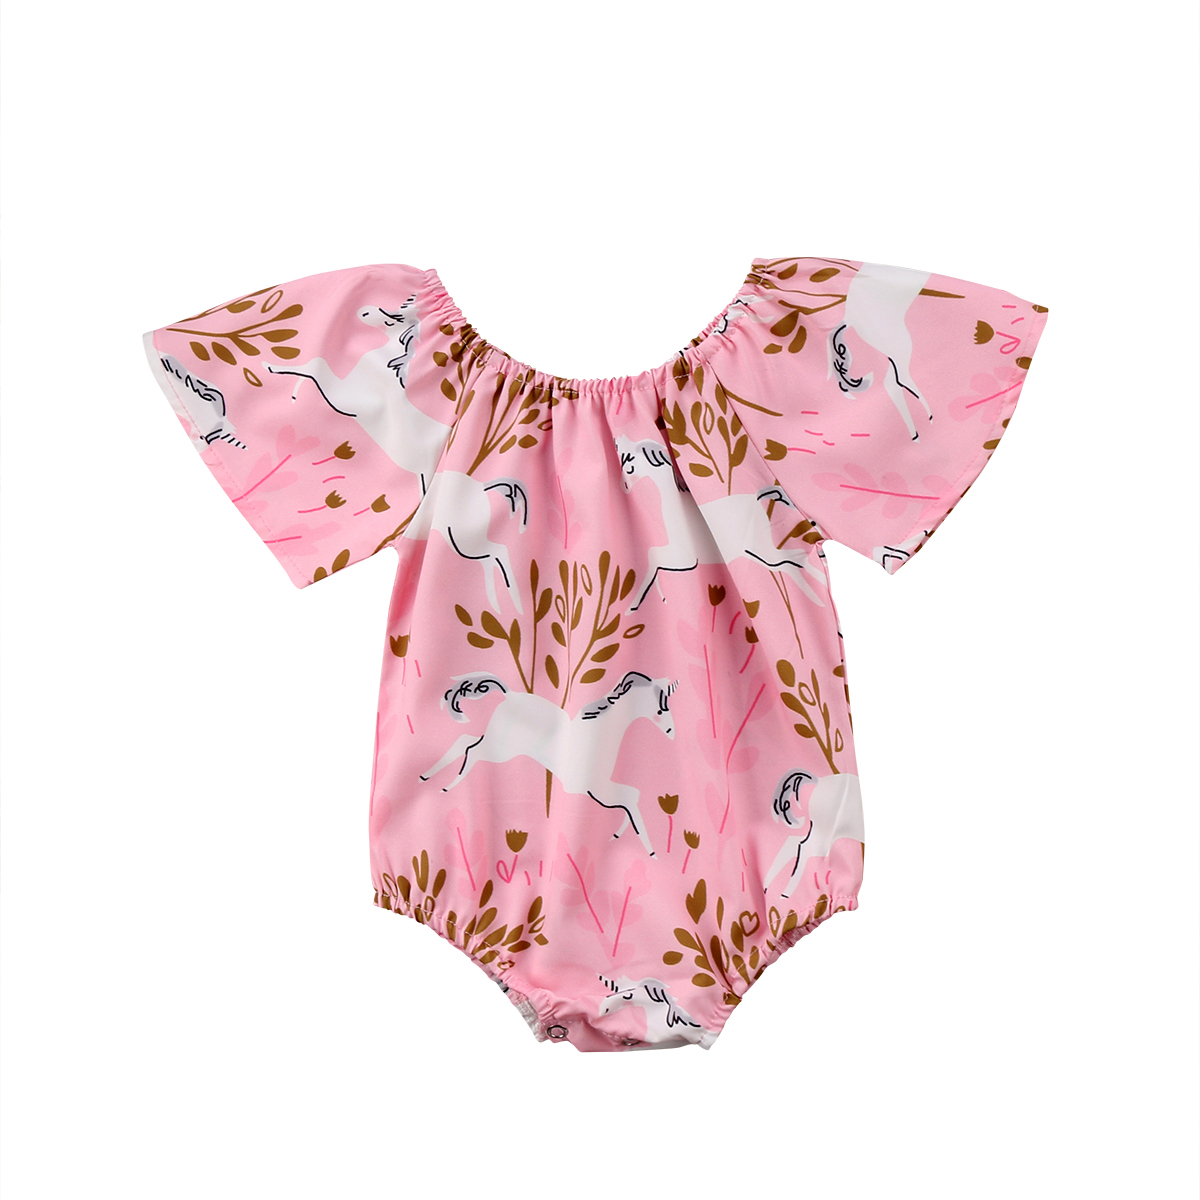 Newborn Baby Girls Unicorn Floral Romper Jumpsuit Outfits